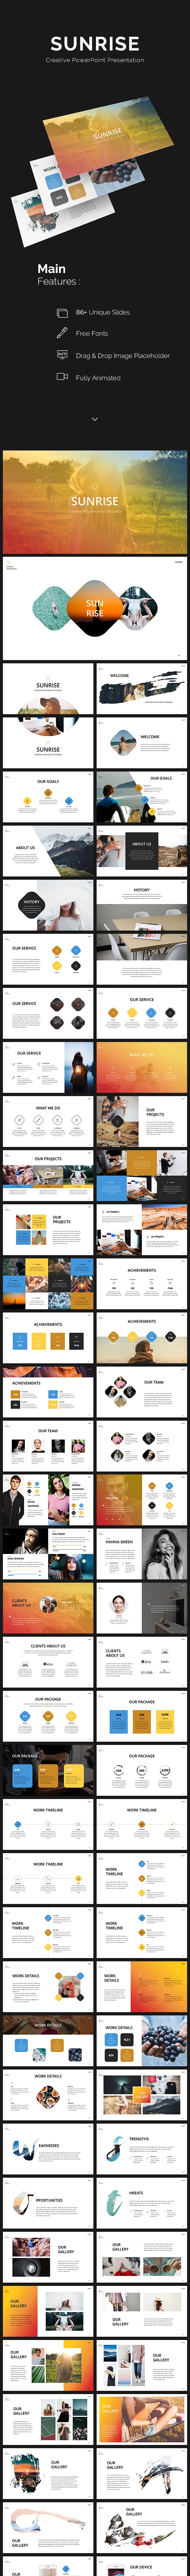 sunrise powerpoint presentation by grizzlydesign graphicriver